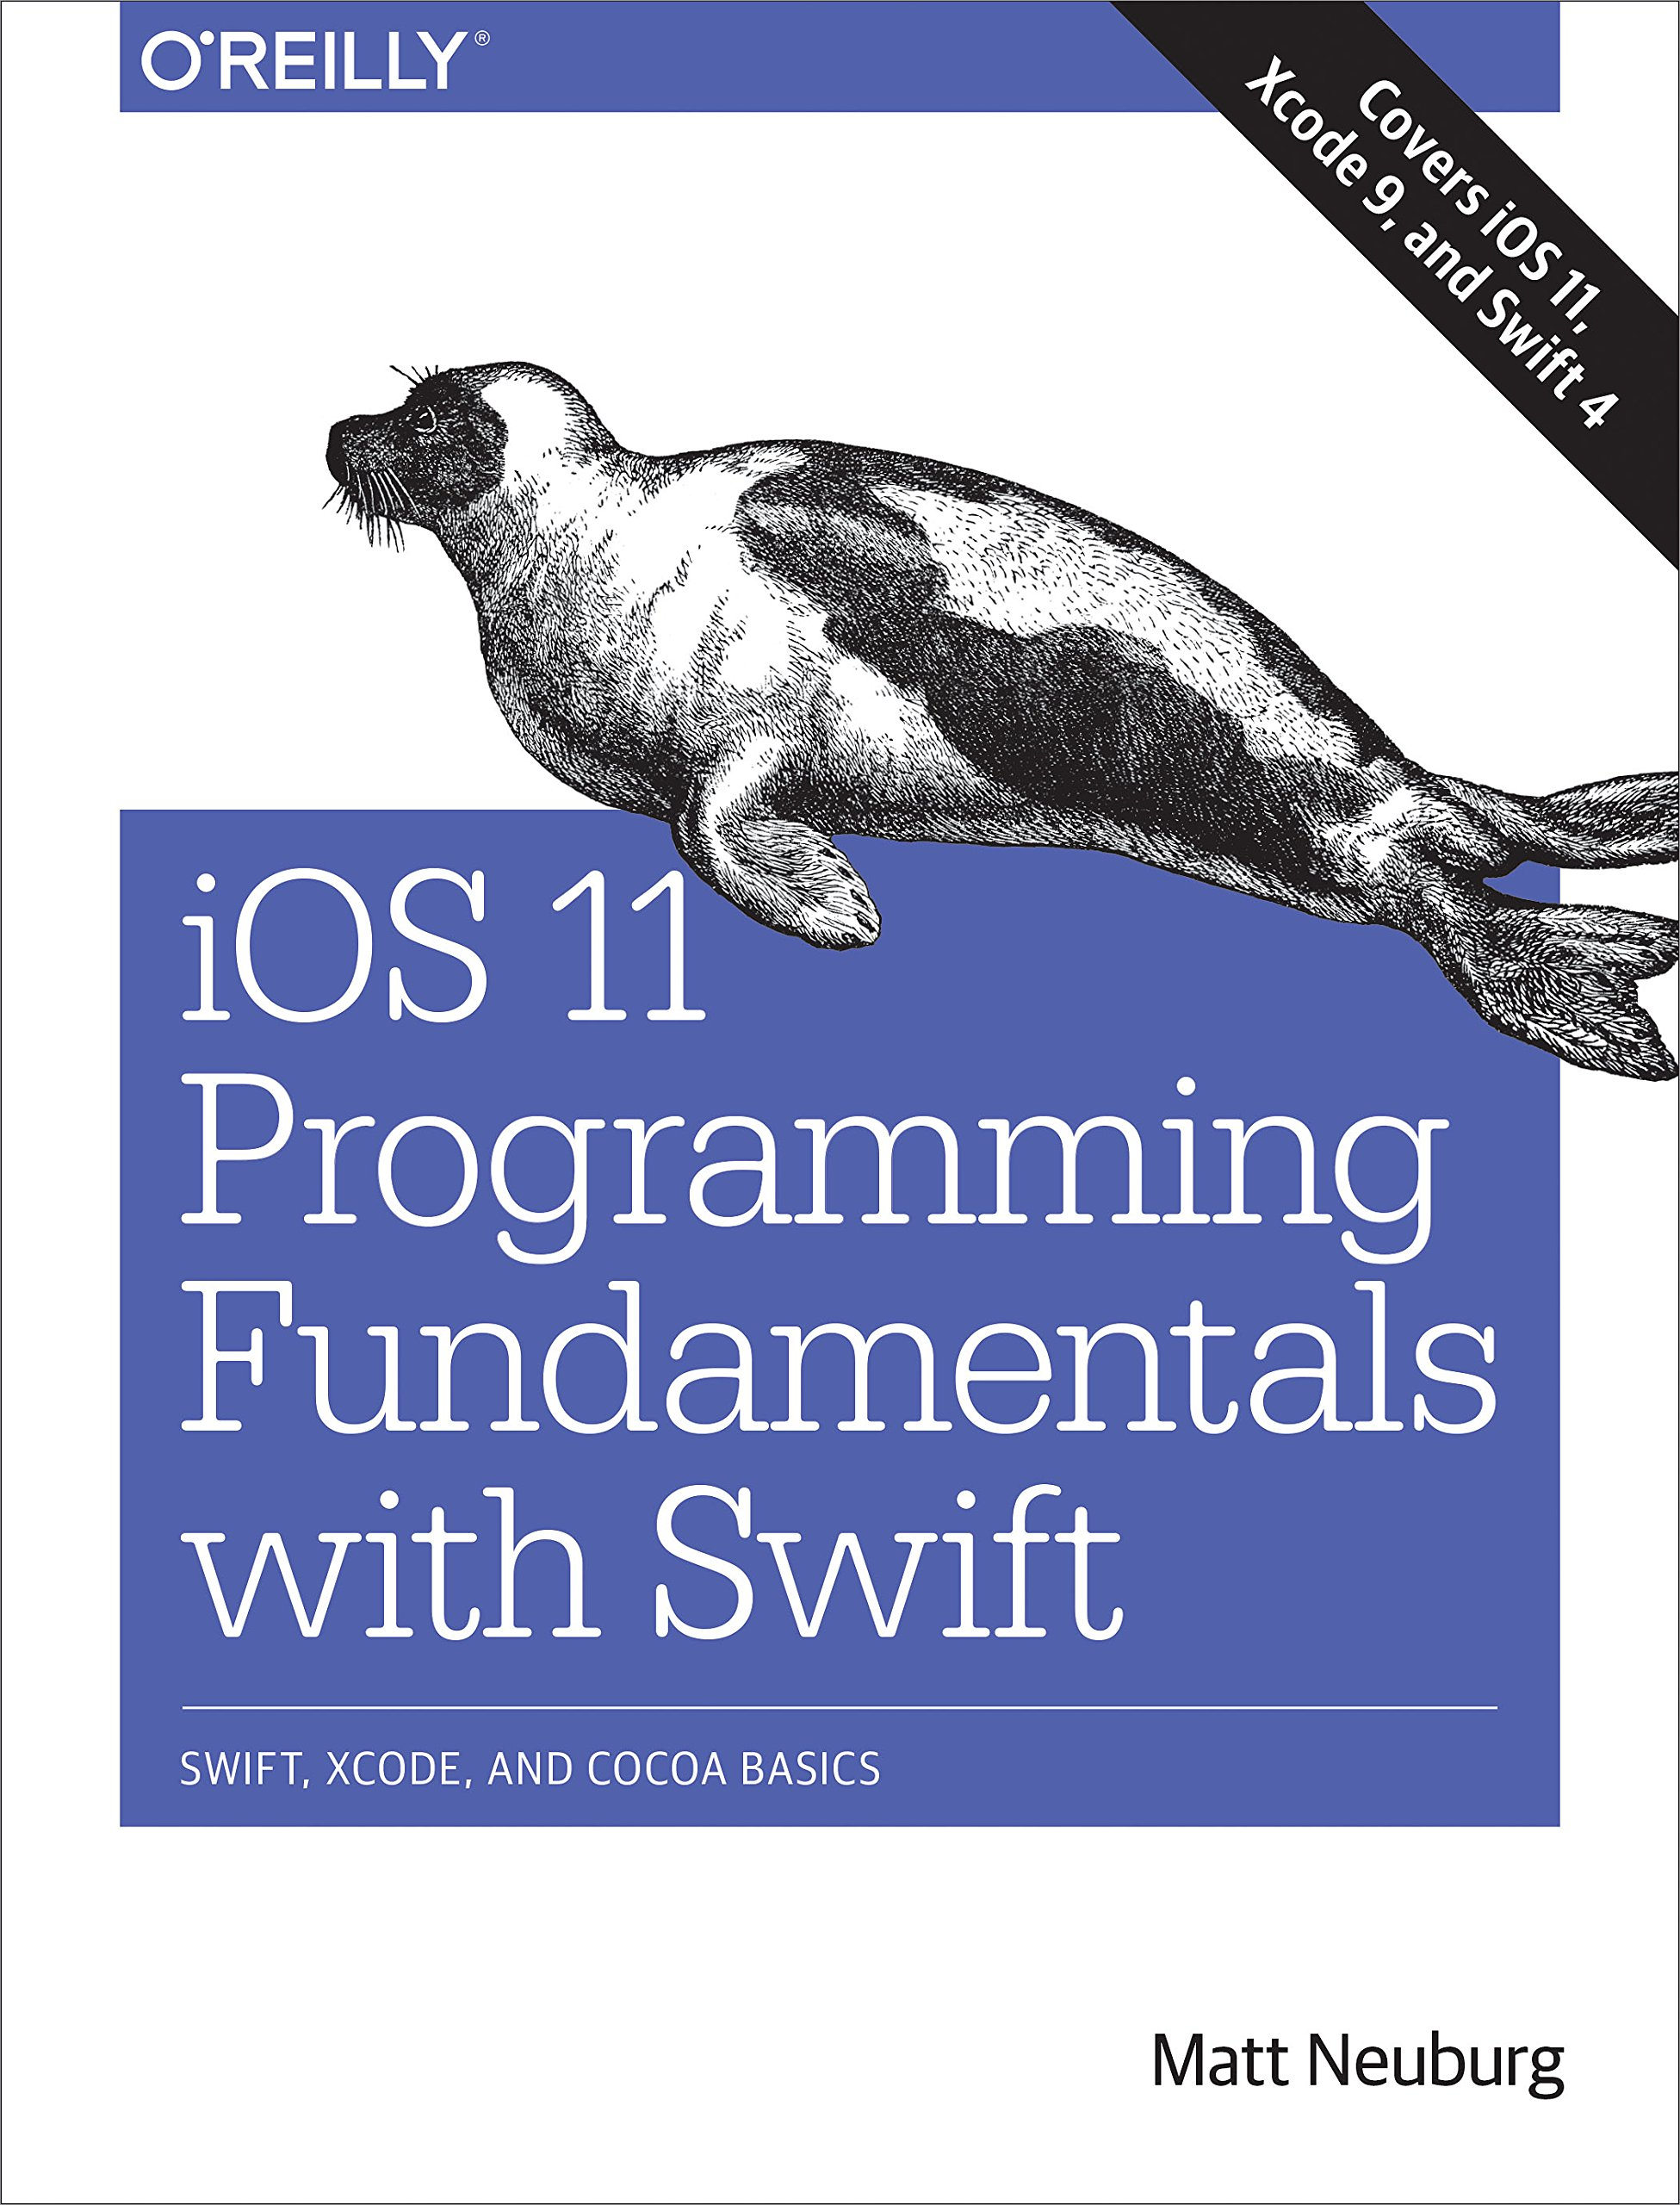 IOS 11 Programming Fundamentals With Swift  Swift Xcode And Cocoa Basics